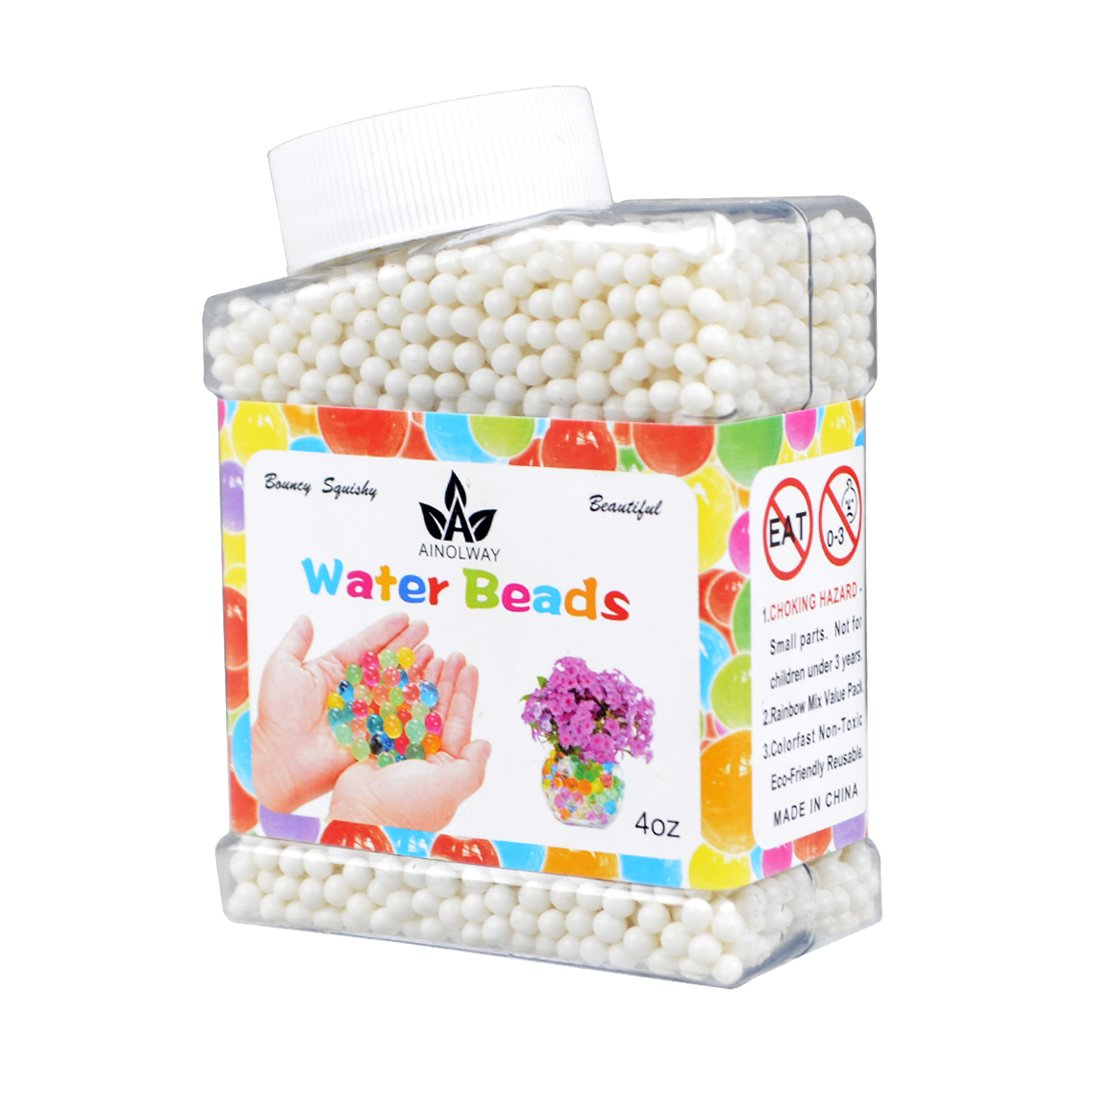 AINOLWAY High Elastic Water Beads Gel Pearls Jelly Crystal Soil for Kids Sensory Toys or Vase Fillers 4oz Almost 15,000 Pcs (Black)